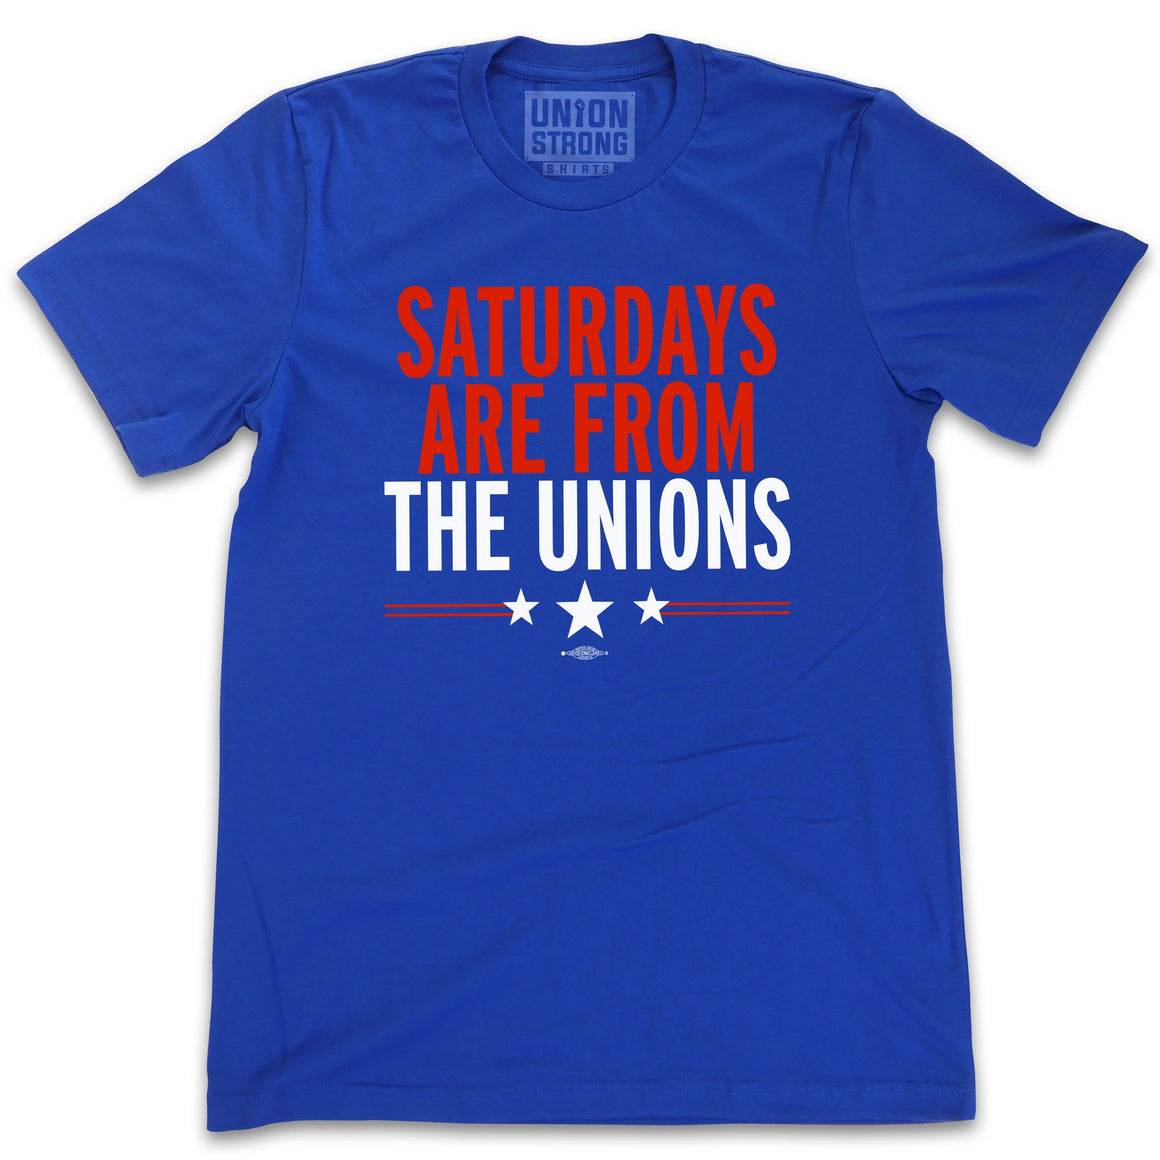 Saturdays Are From The Unions Shirts unionstrongshirts